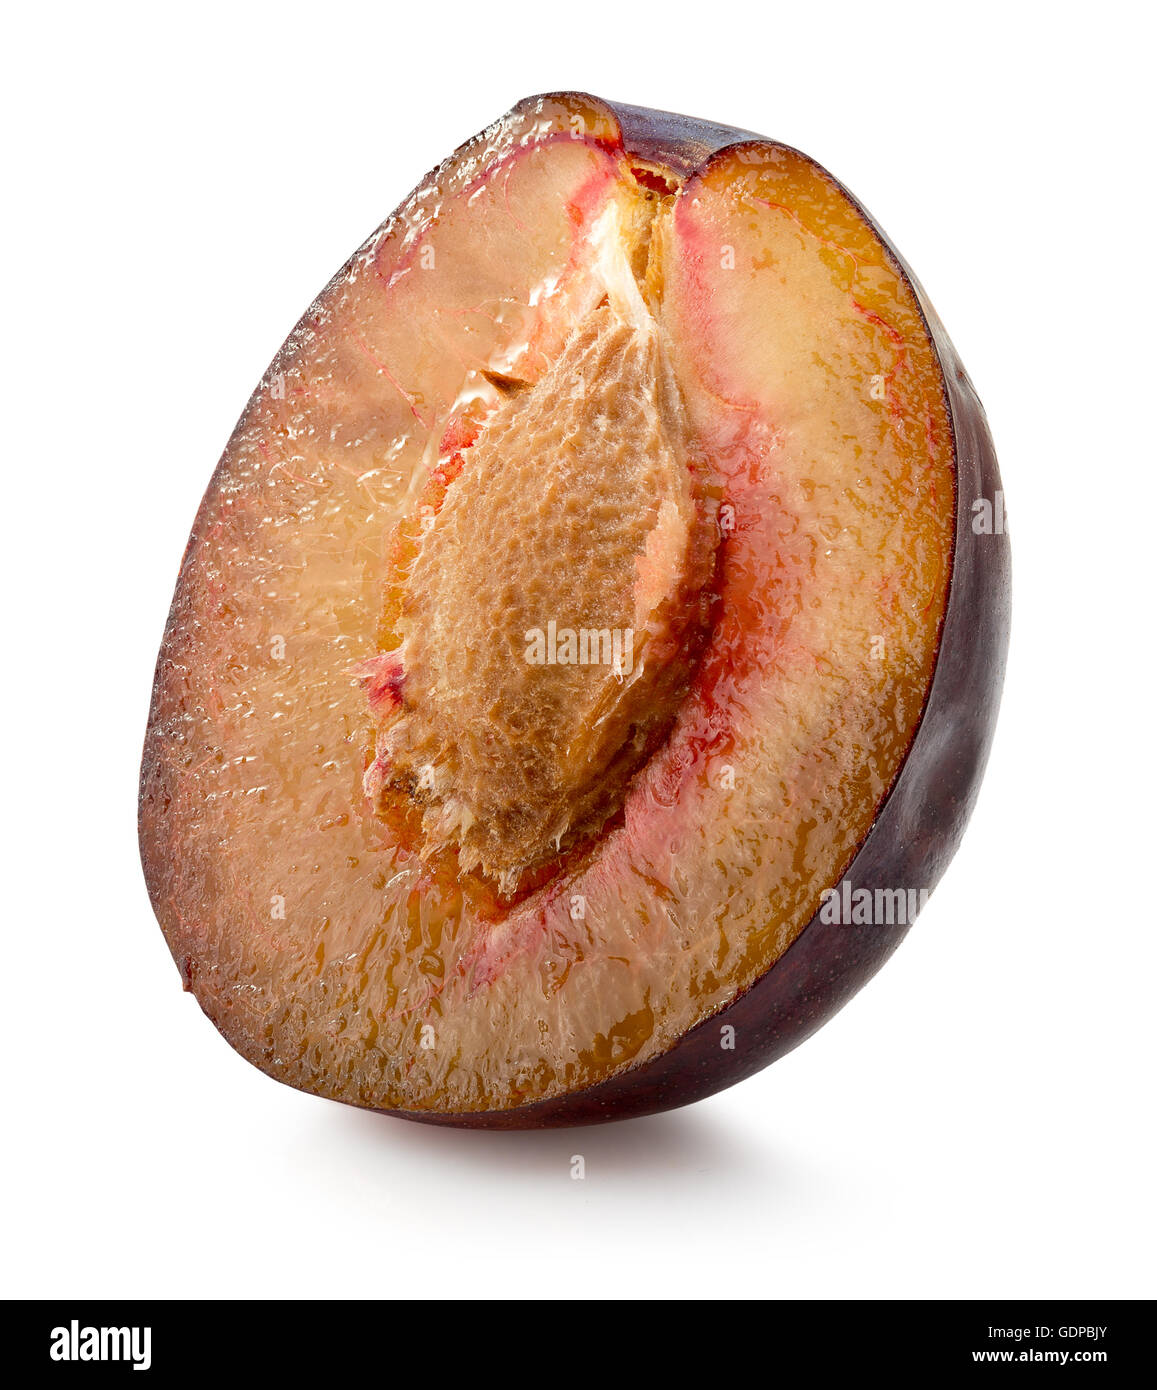 half of plum isolated on the white background. - Stock Image